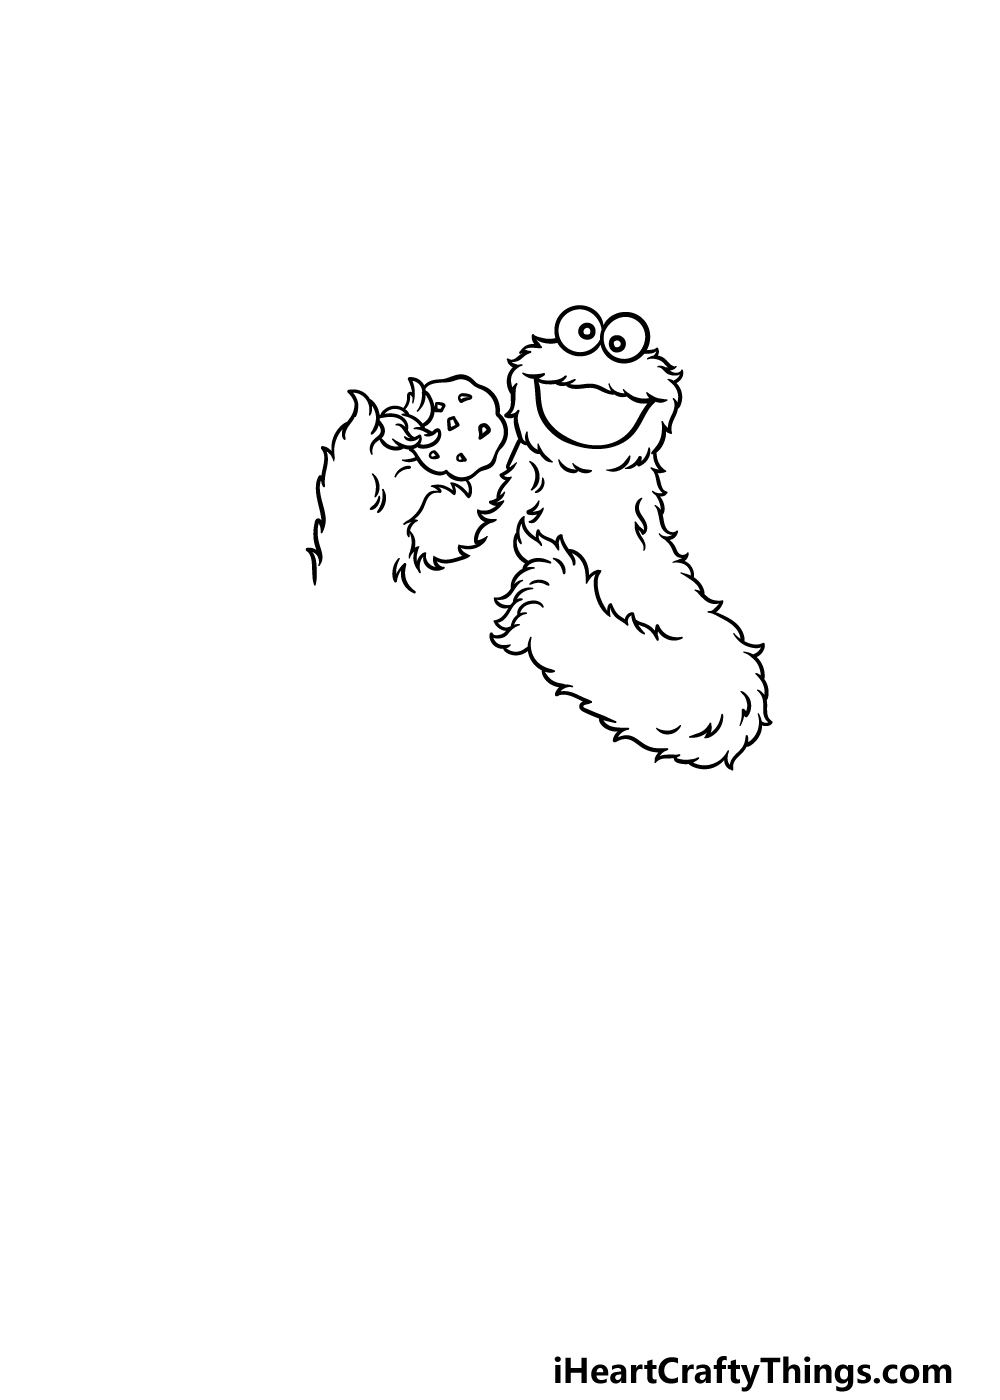 drawing a cookie monster step 3